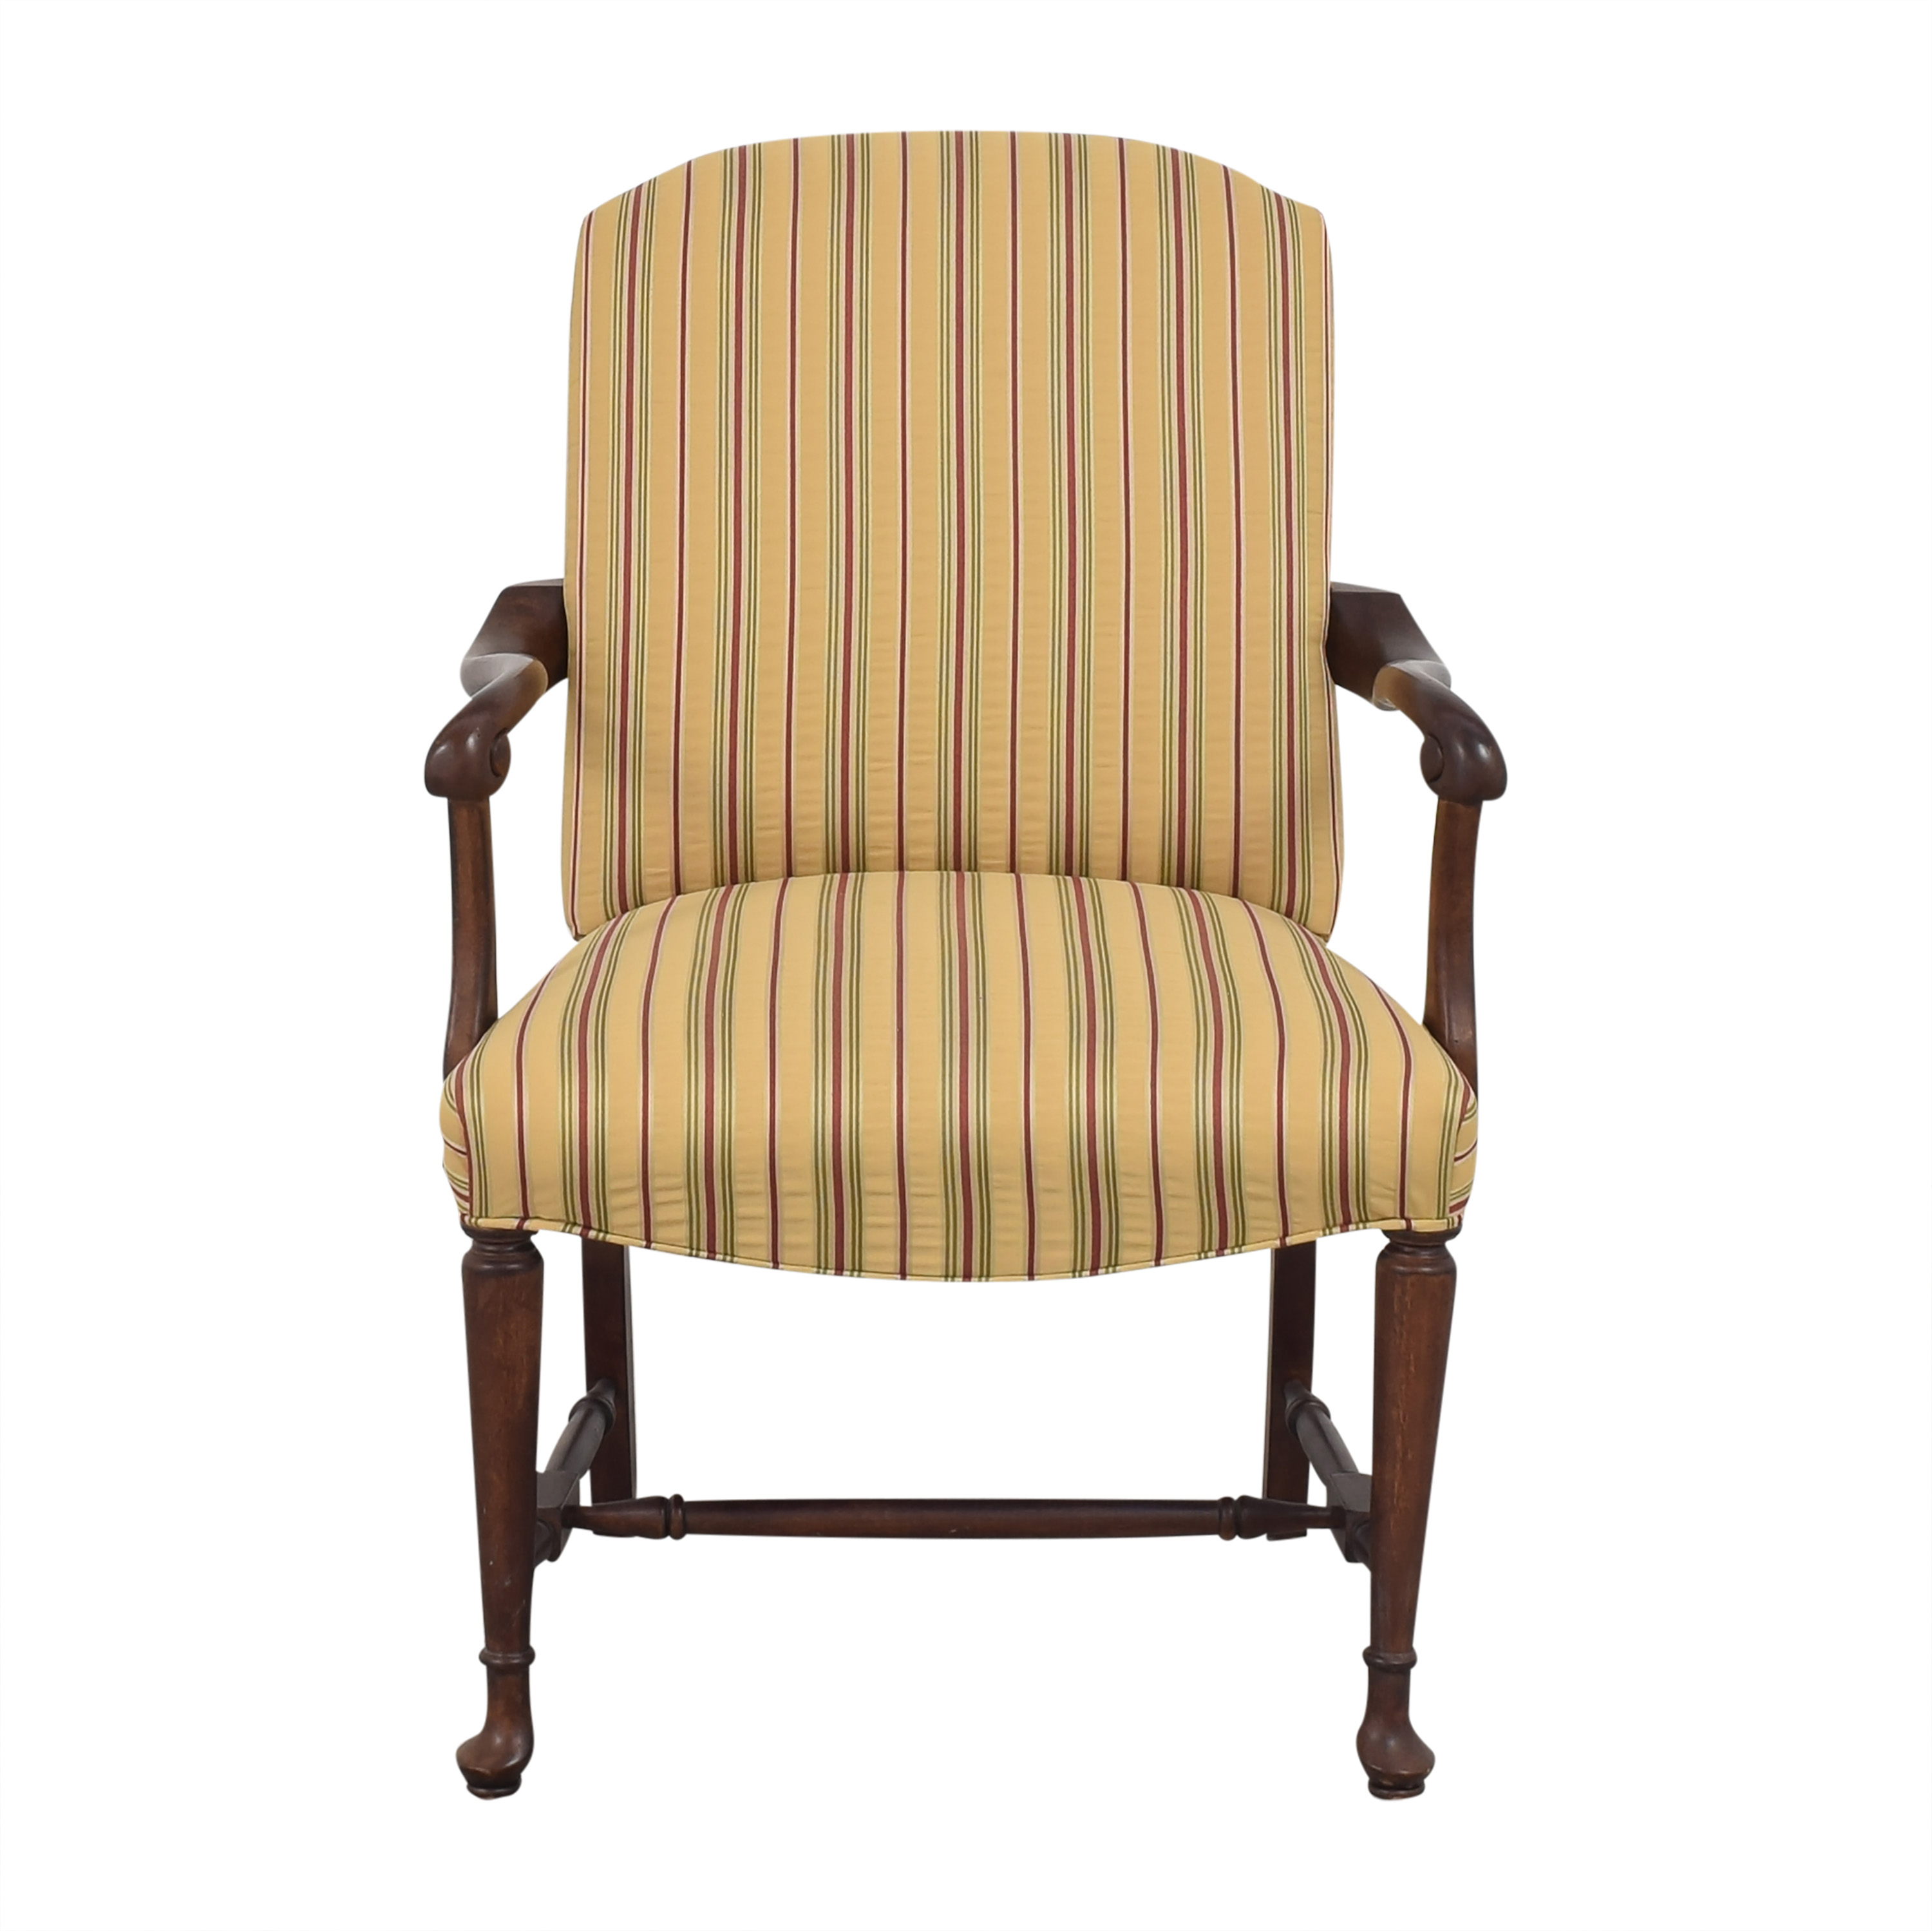 Fairfield Chair Company Fairfield Chair Company Upholstered Accent Chair second hand